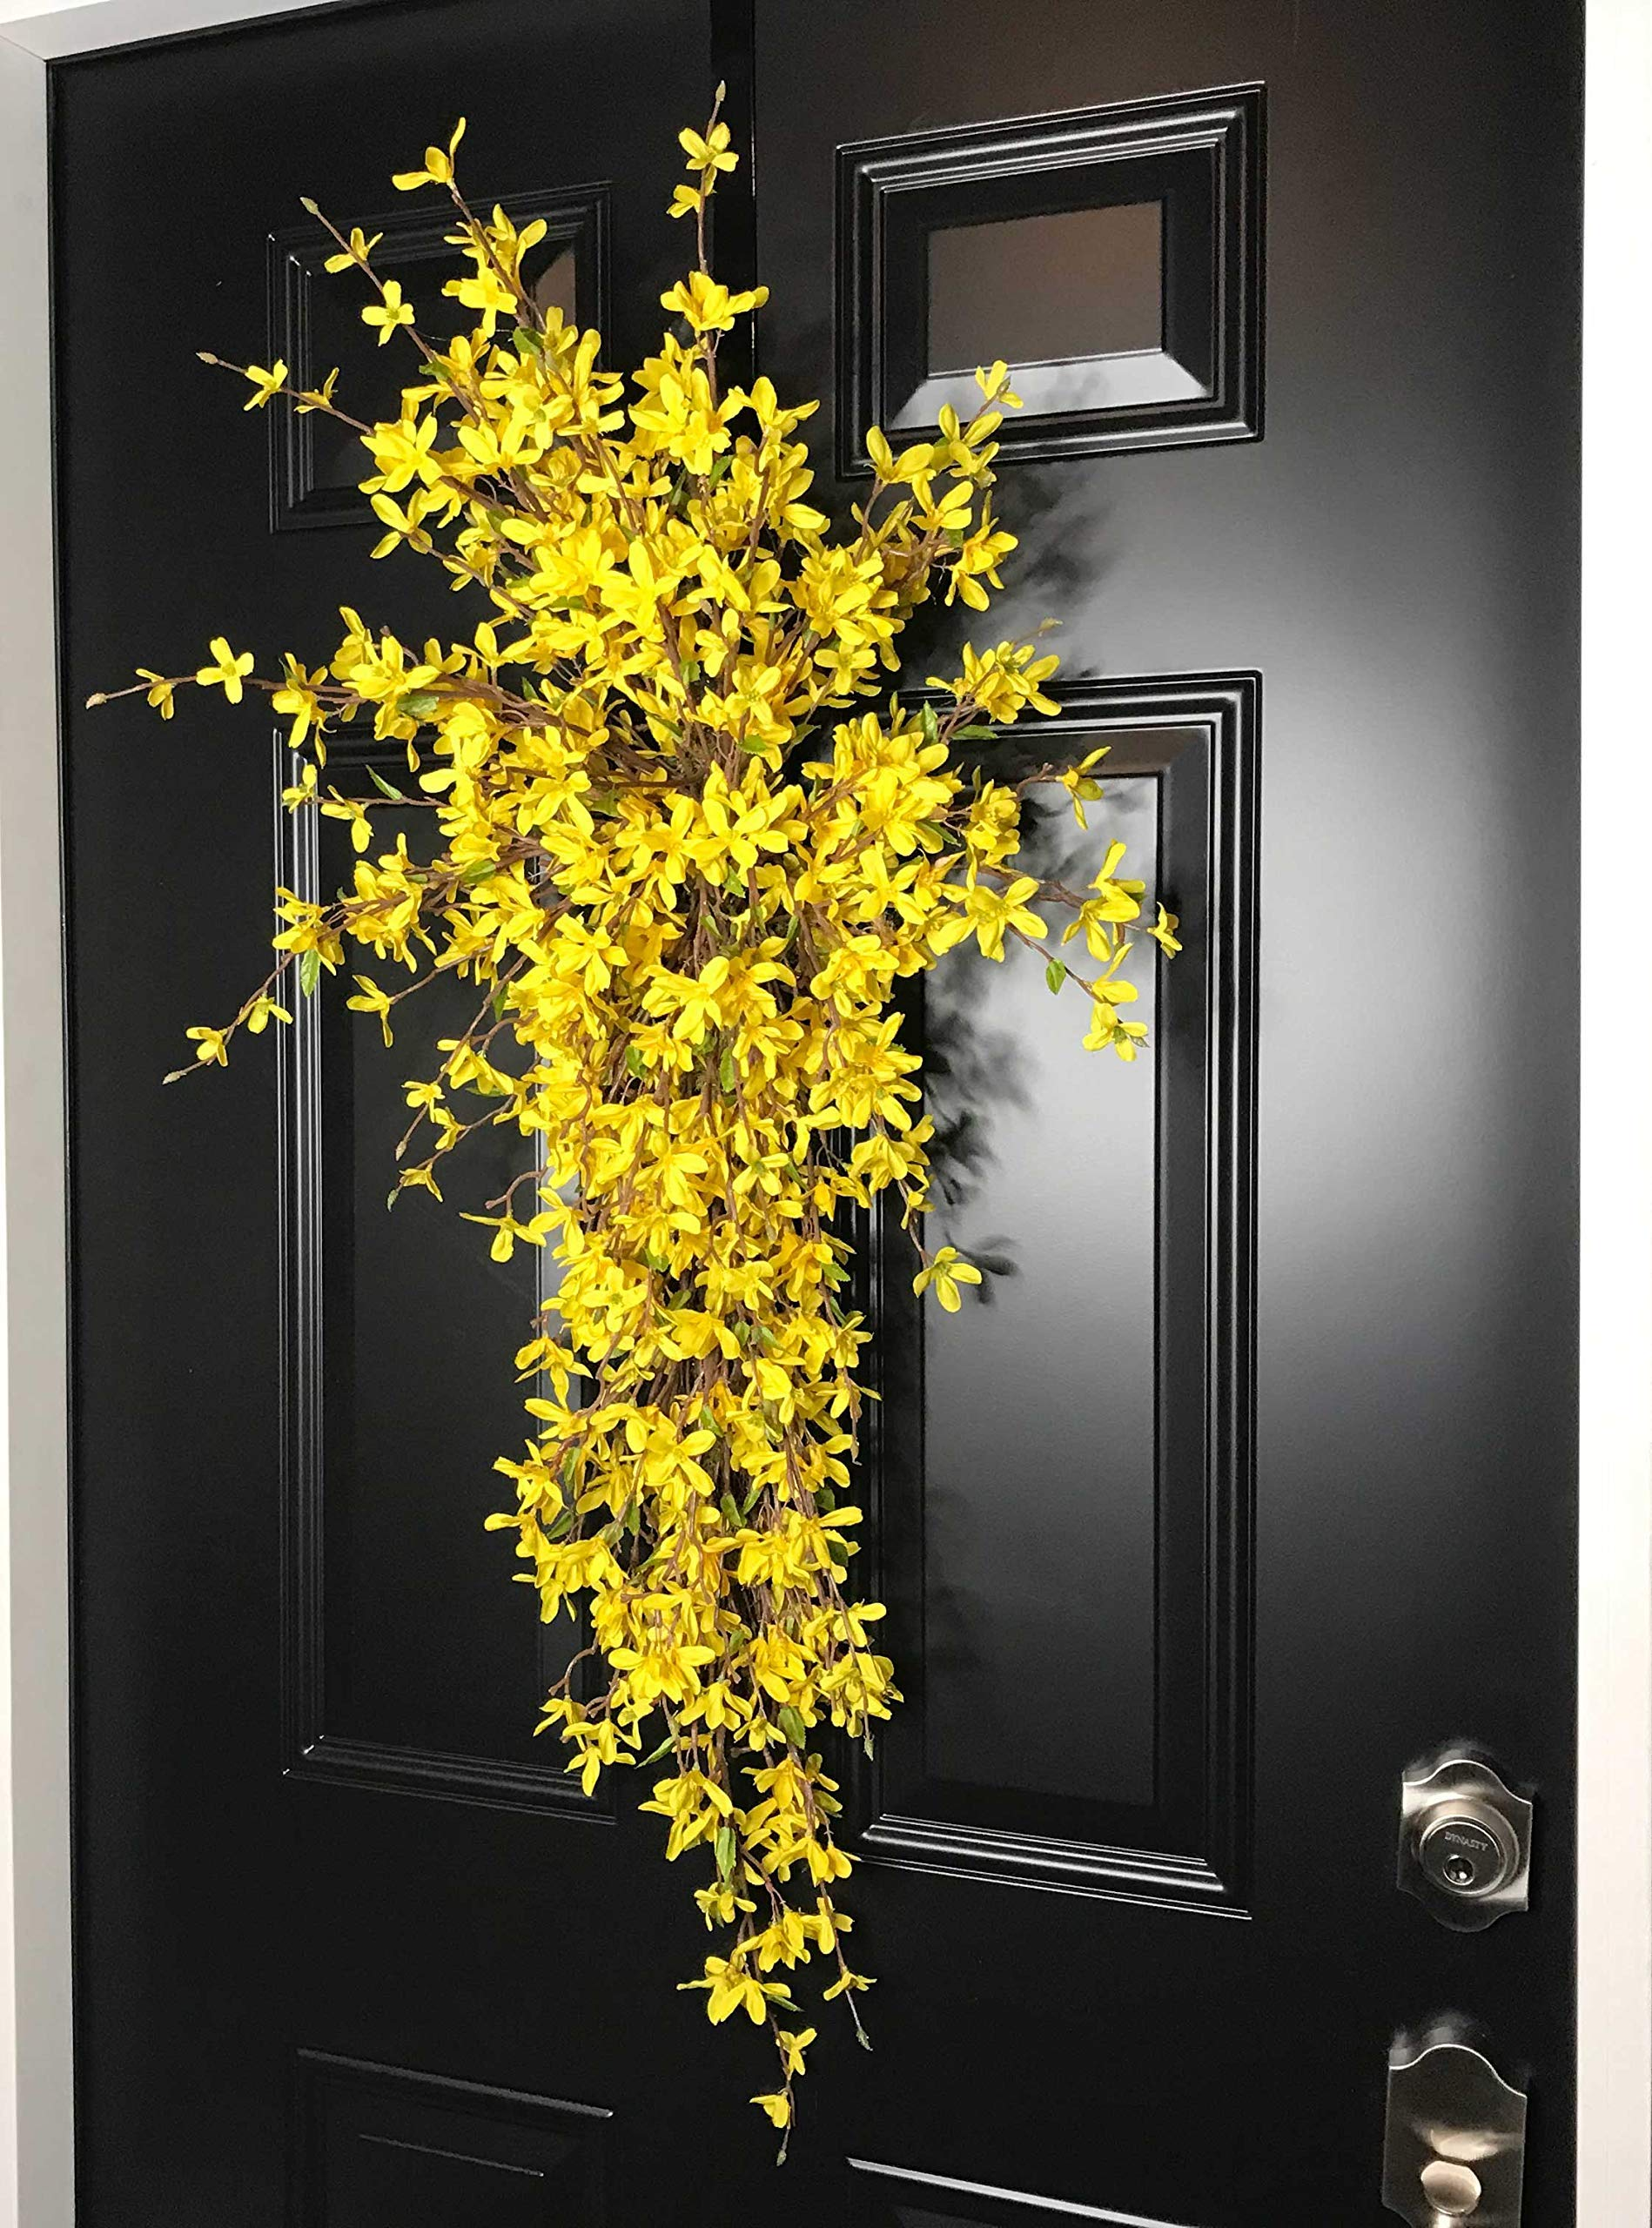 Extra Large Forsythia Floral Teardrop Swag Wreath for Front Door Porch Indoor Wall Farmhouse Decor Spring Springtime Summer Summertime Mother's Day Easter, Handmade, Yellow, 3 Sizes-42'', 36'', 30'' L by Wreath and Vine, LLC (Image #4)